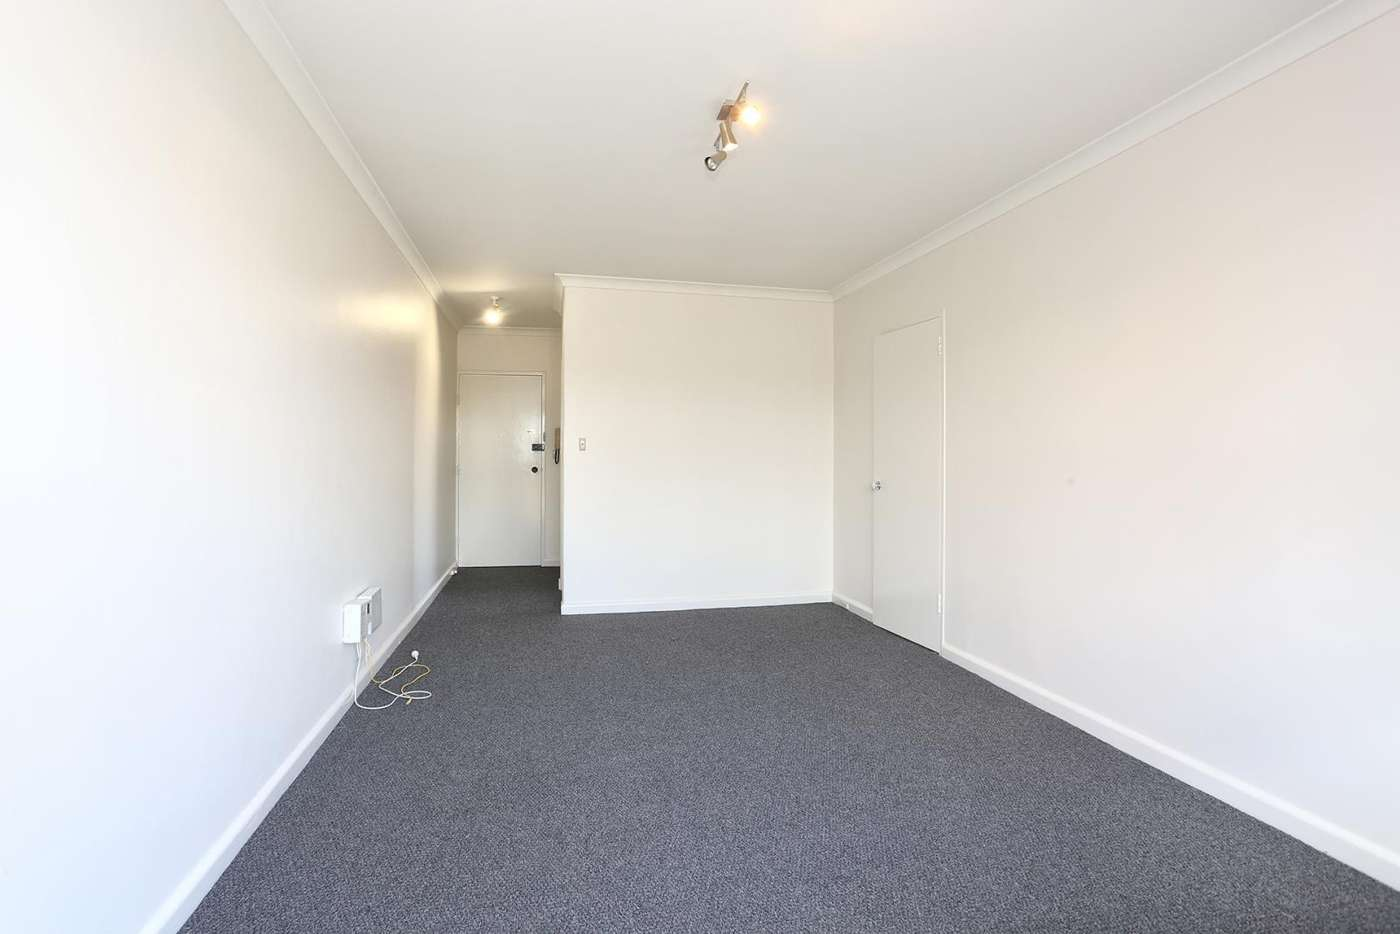 Fifth view of Homely apartment listing, 9/30 Park Drive, Parkville VIC 3052